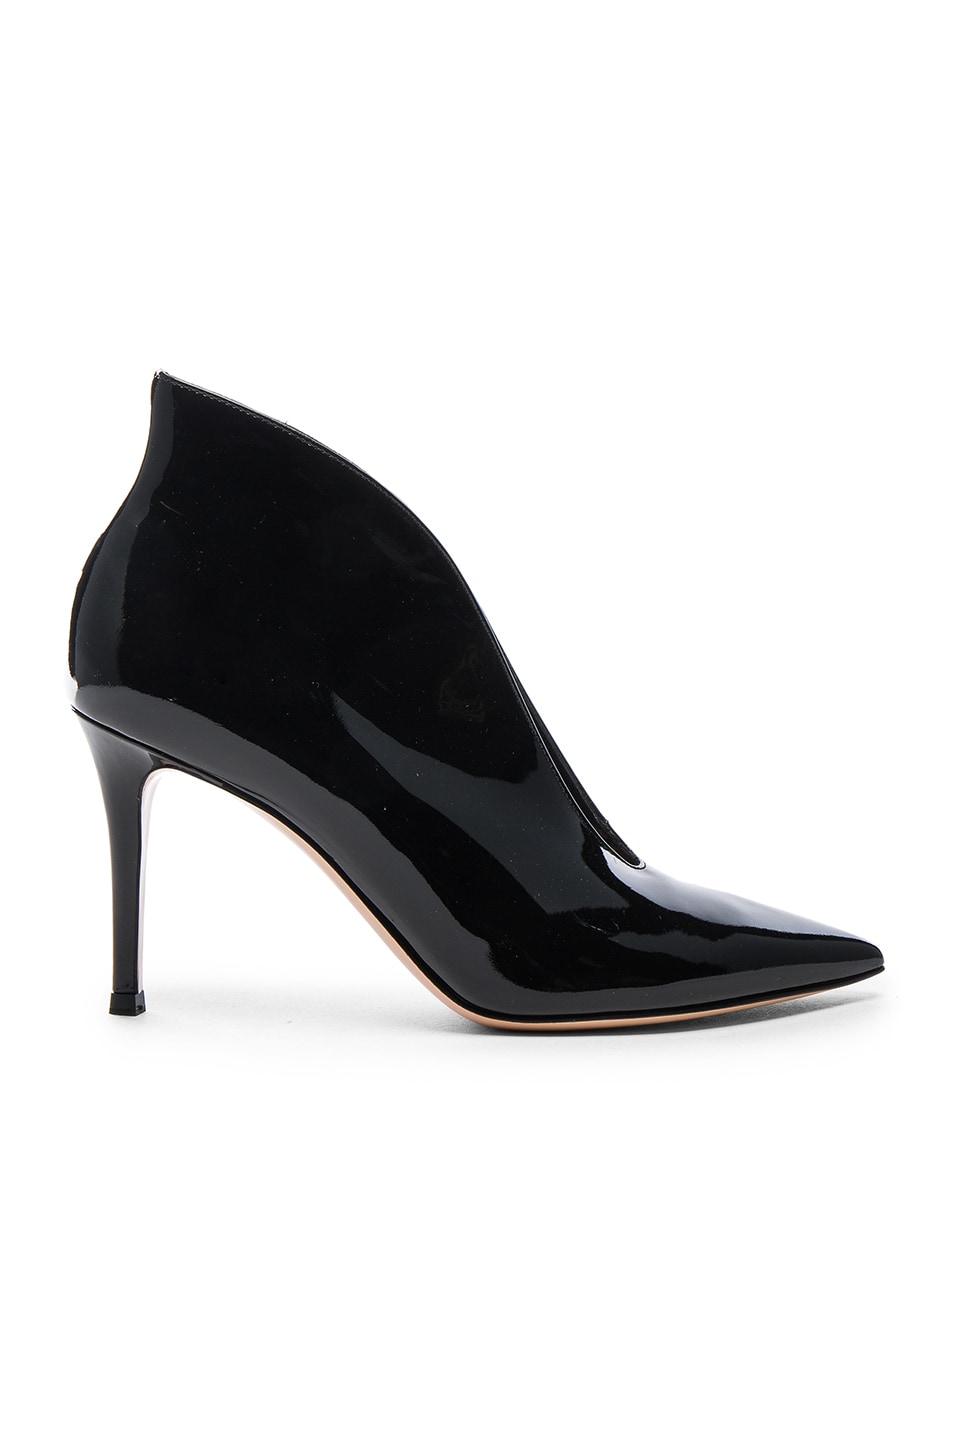 Gianvito Rossi Patent Cut Out Heels in .